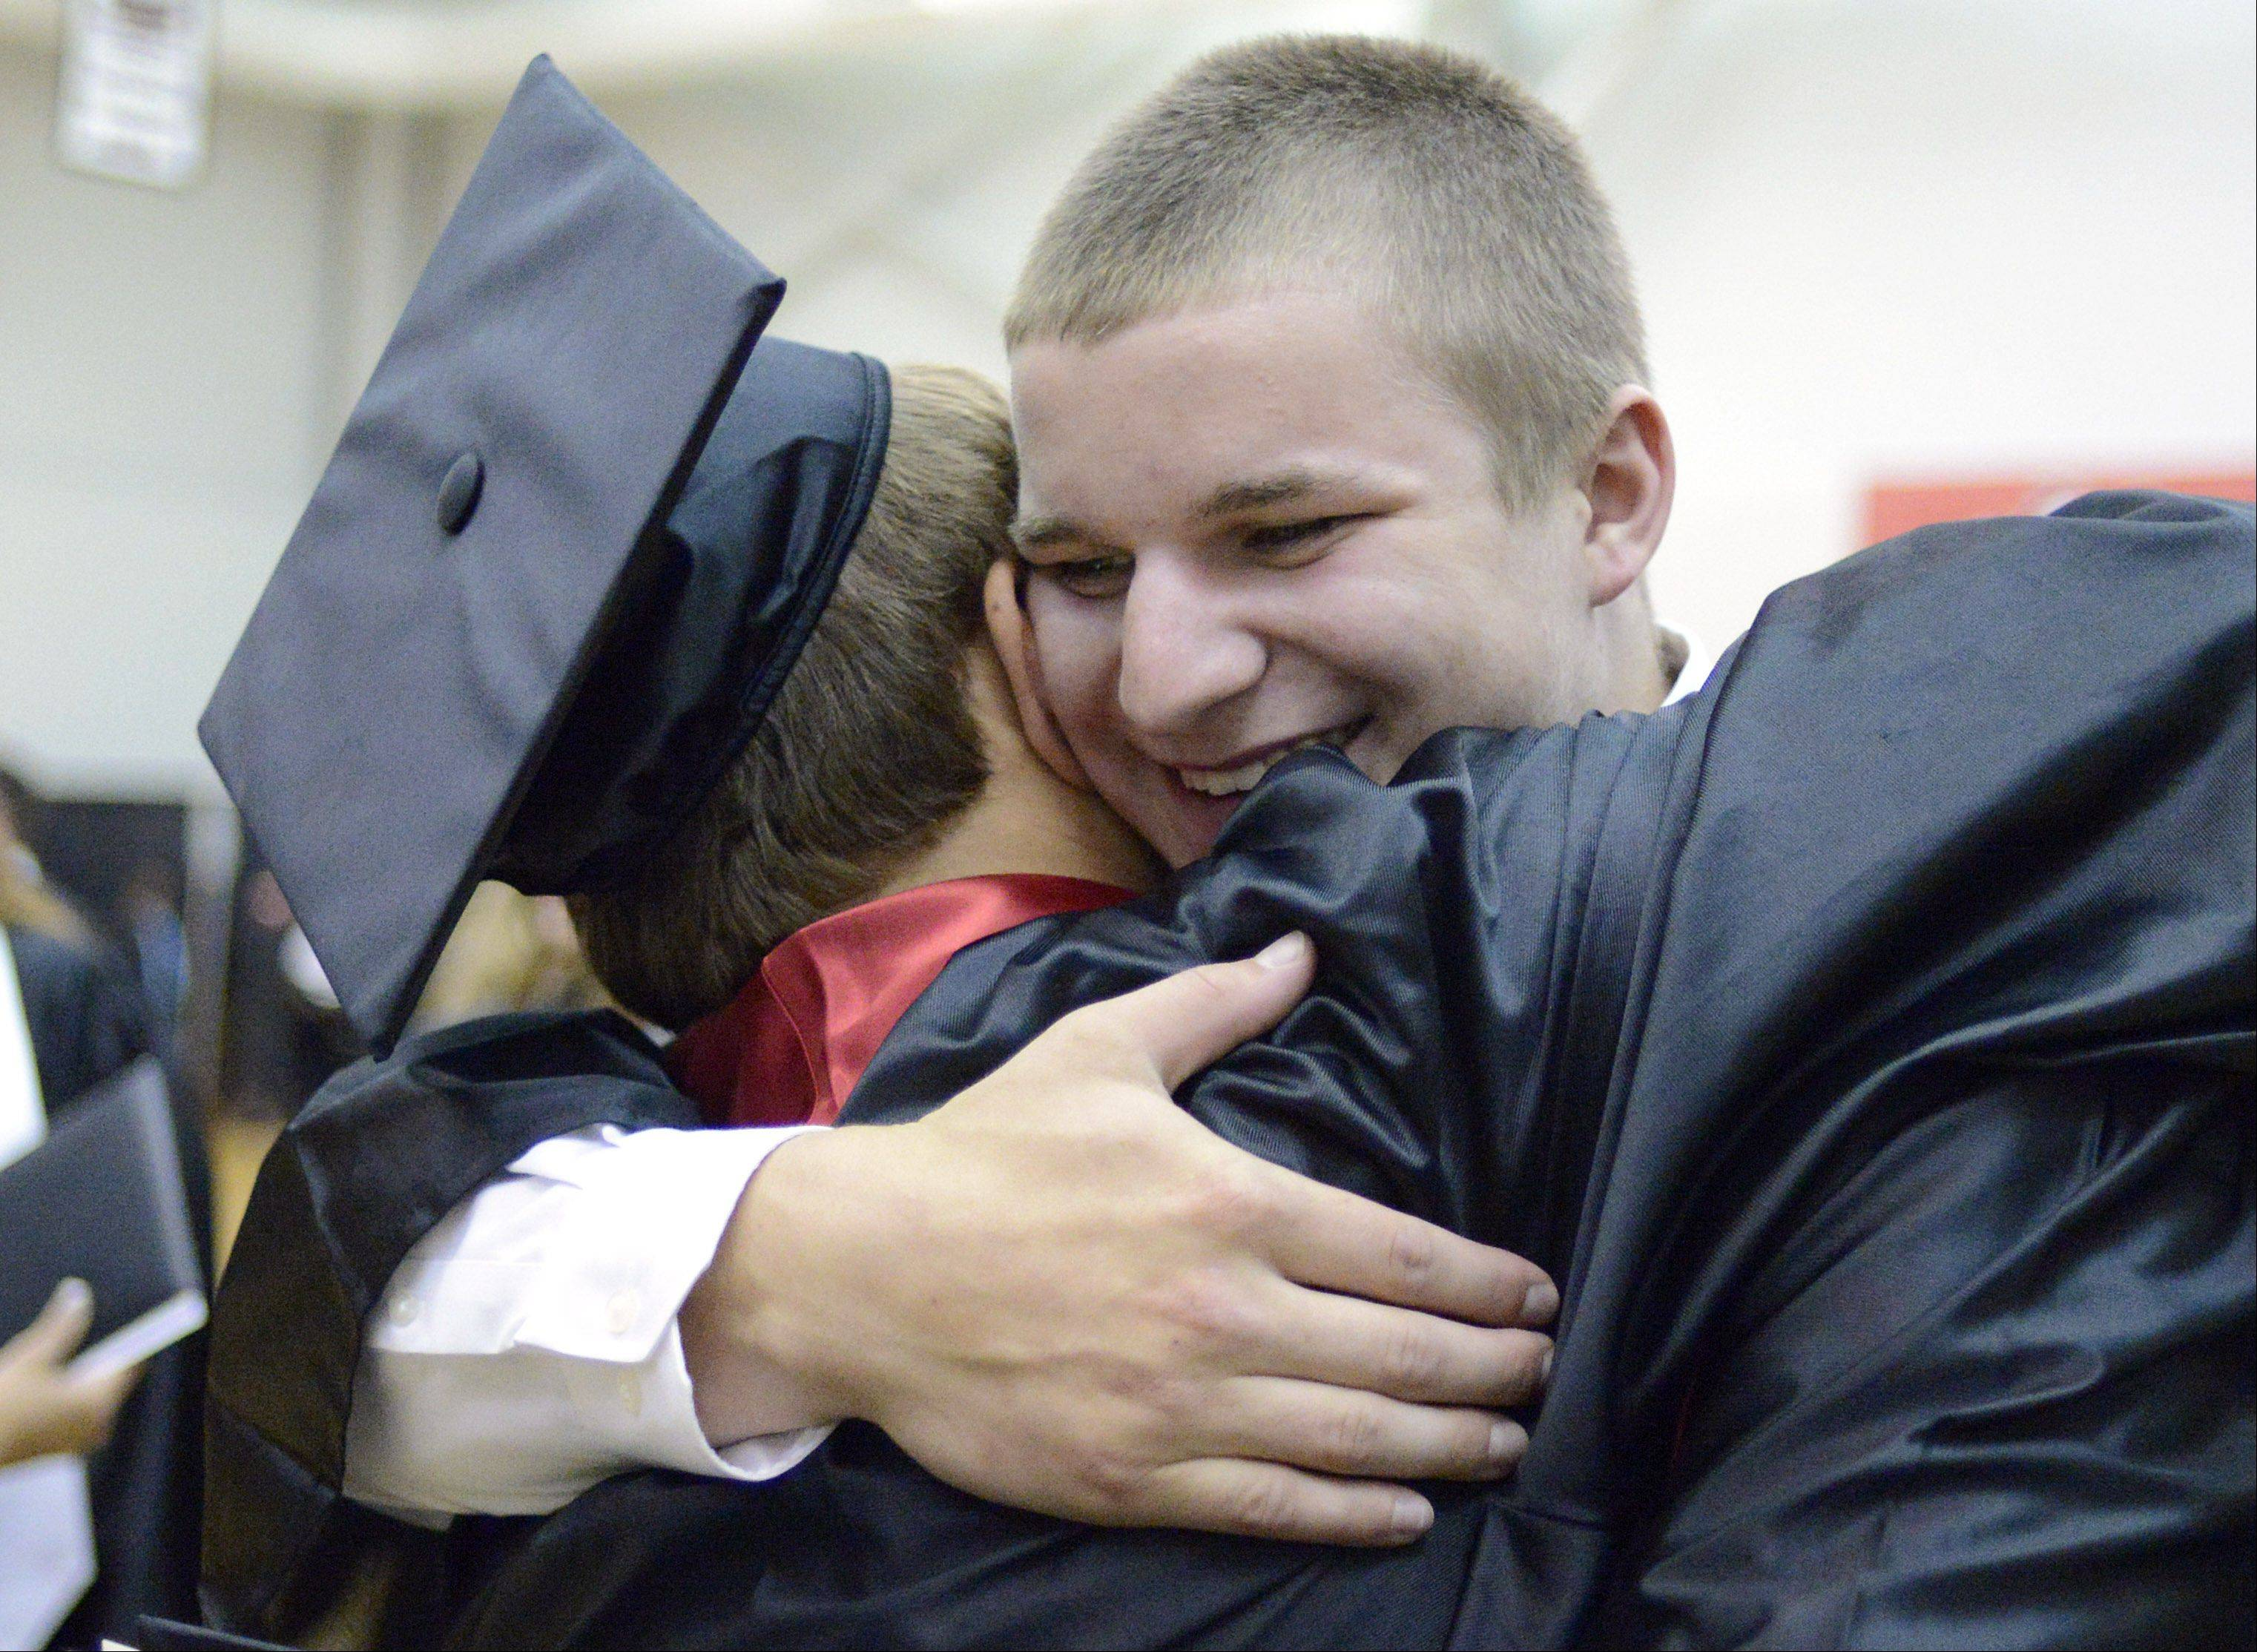 Benjamin Link, facing, embraces friend Dan Albrecht after they received their diplomas at Batavia High School's commencement ceremony at the NIU Convocation Center on Friday, May 31.